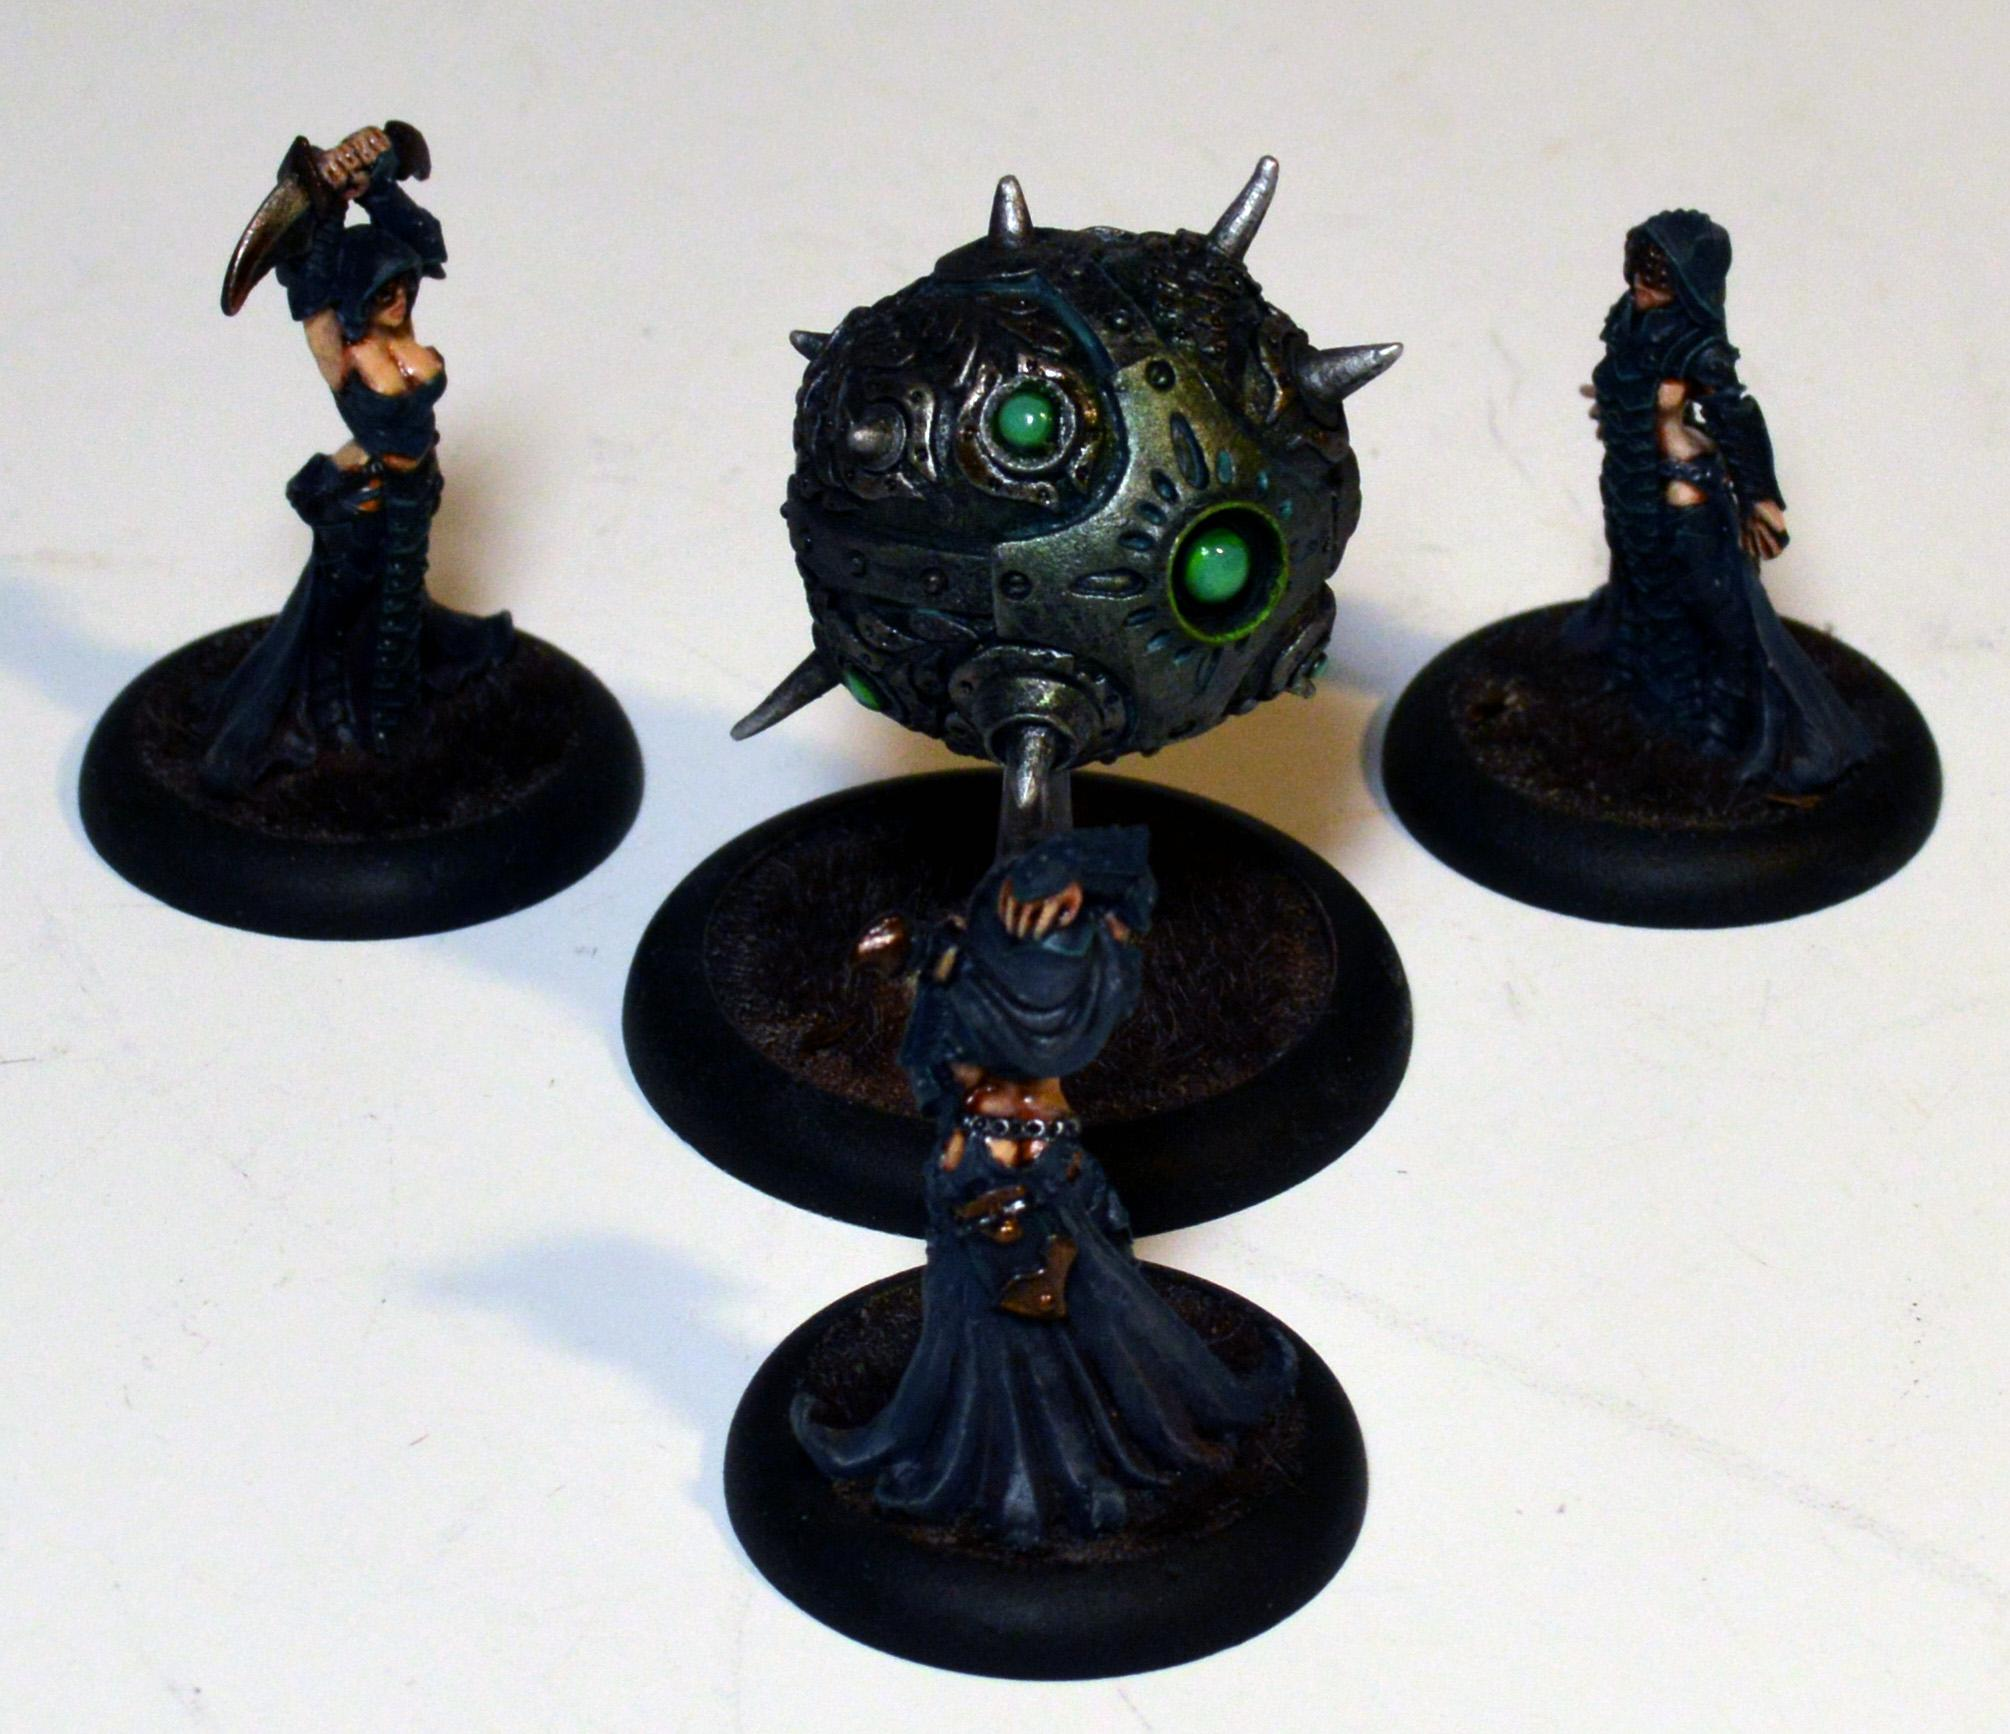 Cryx, Warmachine, Witch Coven of Garlghast & the Egregore